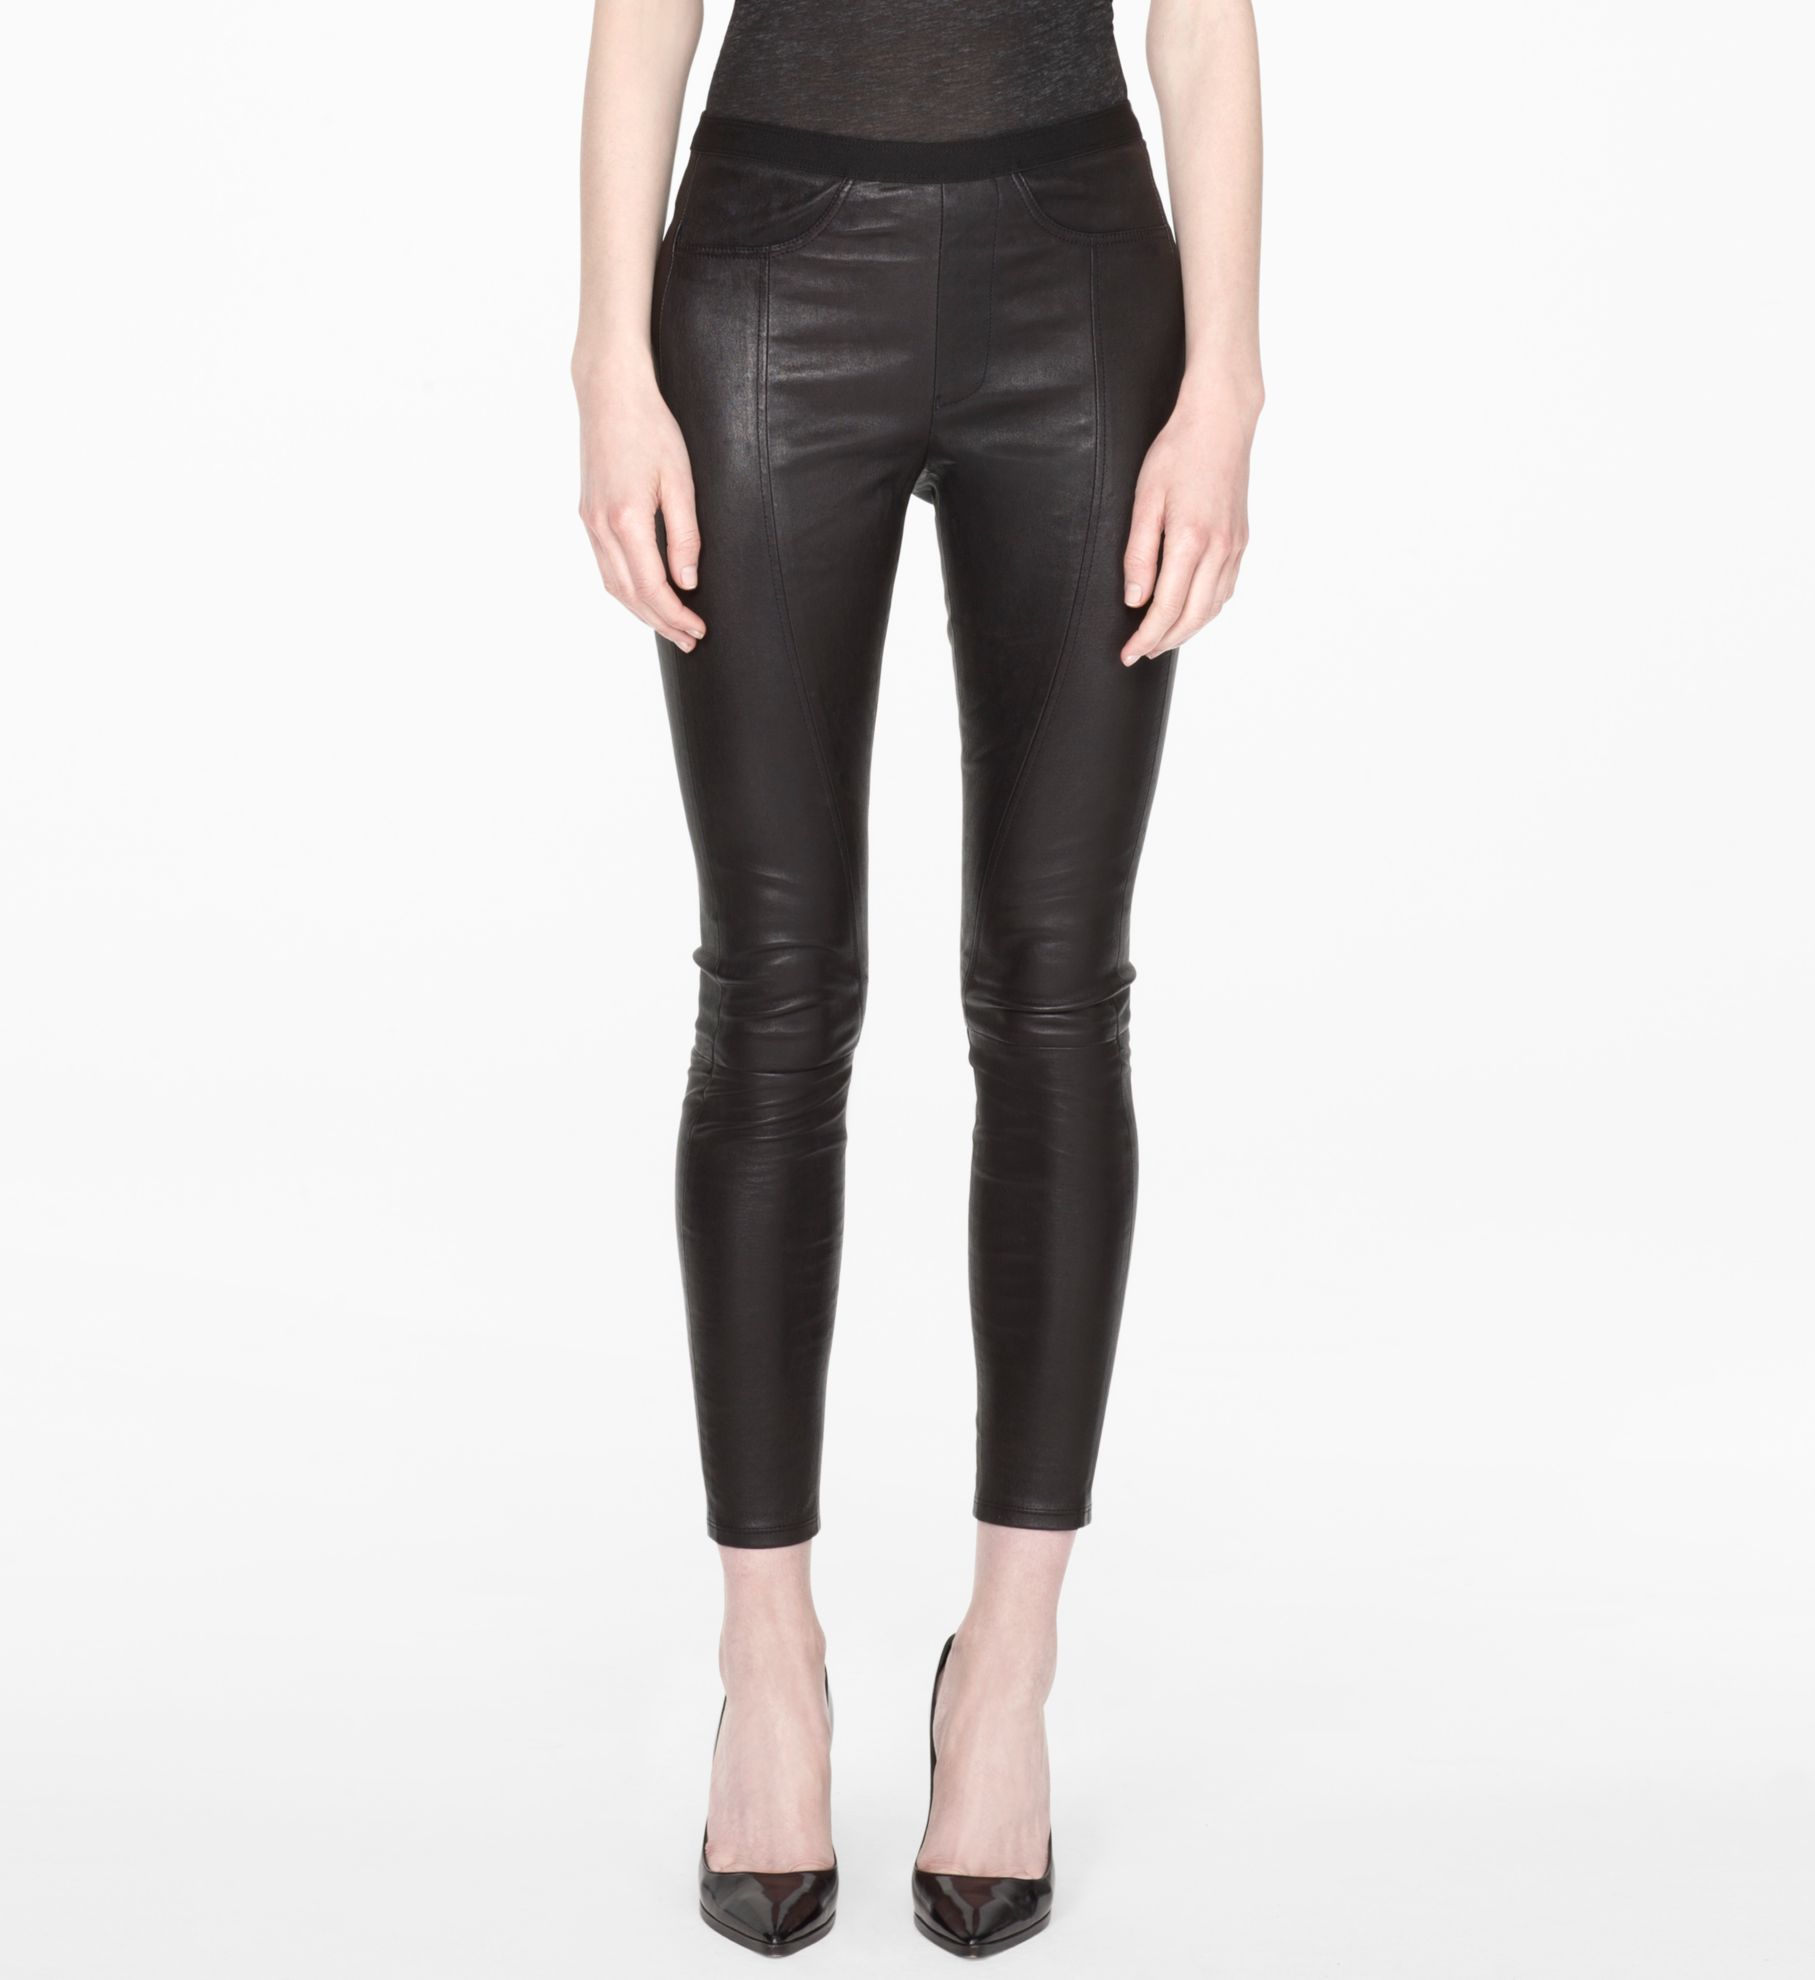 WOMEN'S PANT - CROPPED ZIP LEATHER PANT - HELMUTLANG.COM